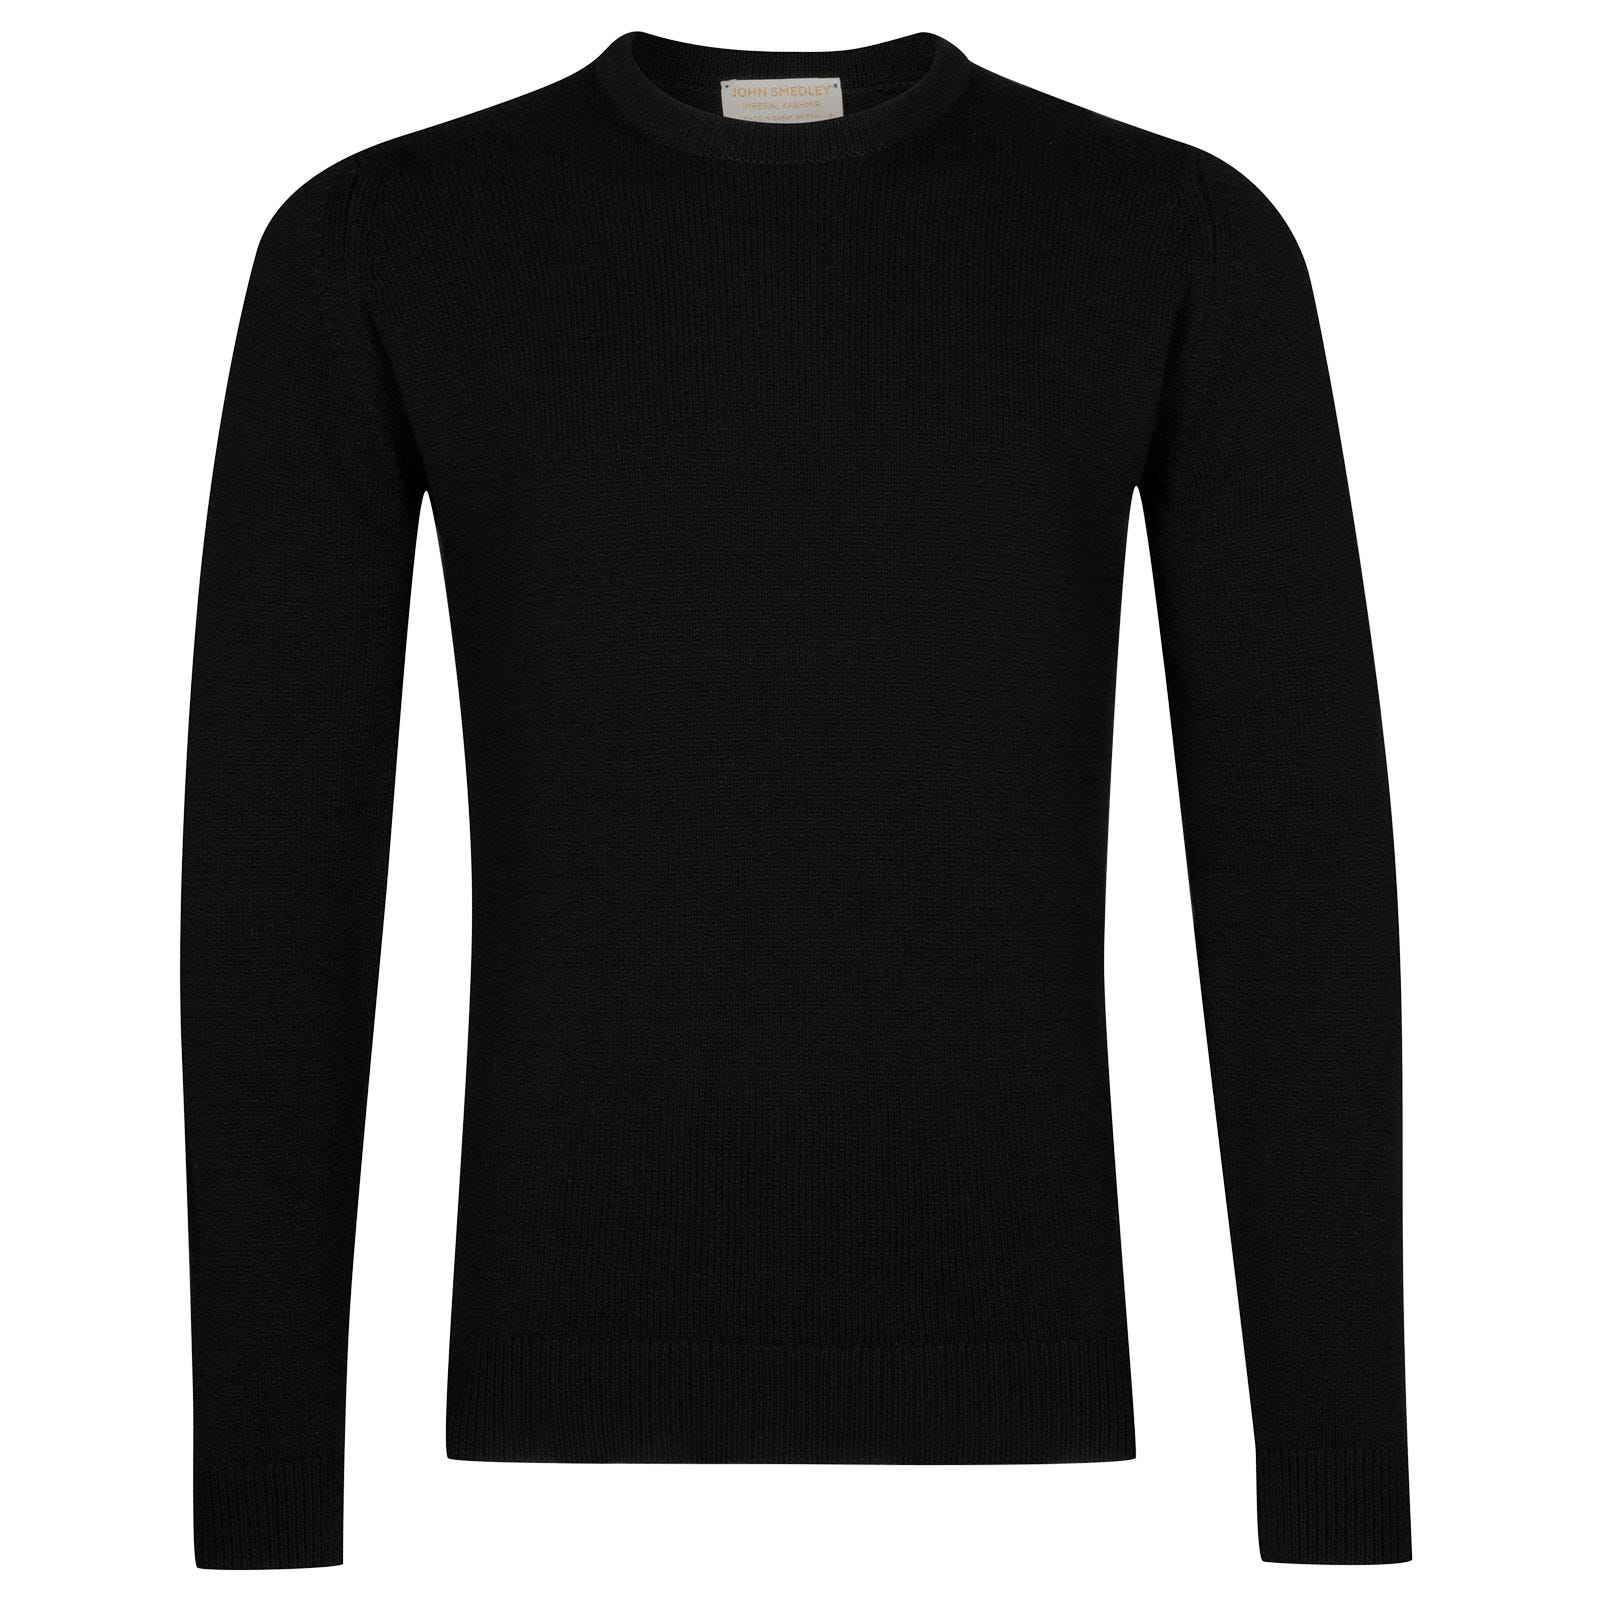 John Smedley Crowford Wool and Cashmere Pullover in Black-L